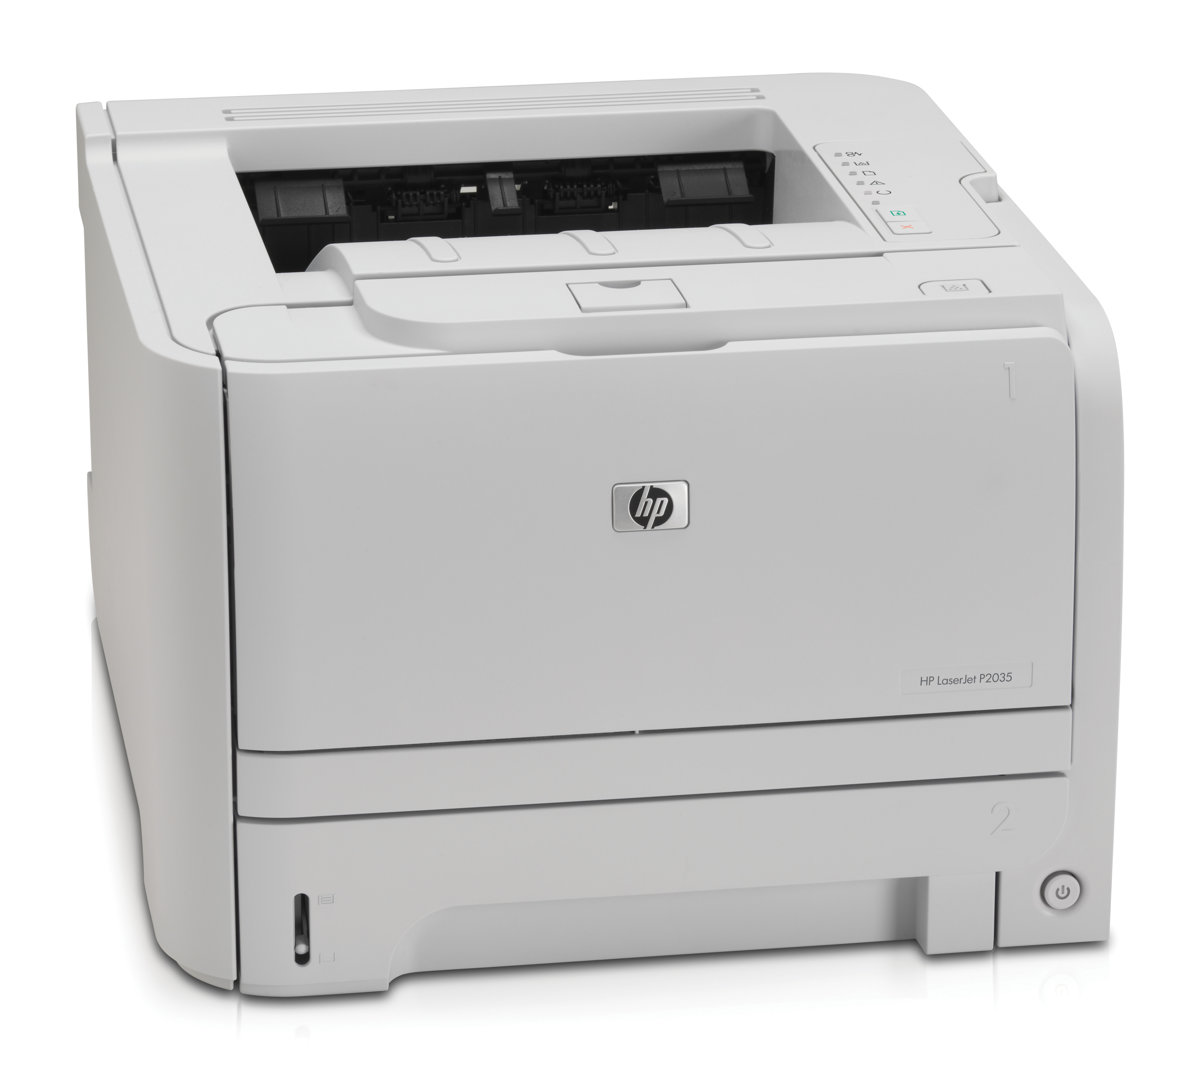 hp laserjet p2035 monochrome laser printer by office depot officemax rh officedepot com 2000 HP LaserJet Ink 2000 HP LaserJet Toner Cartridge